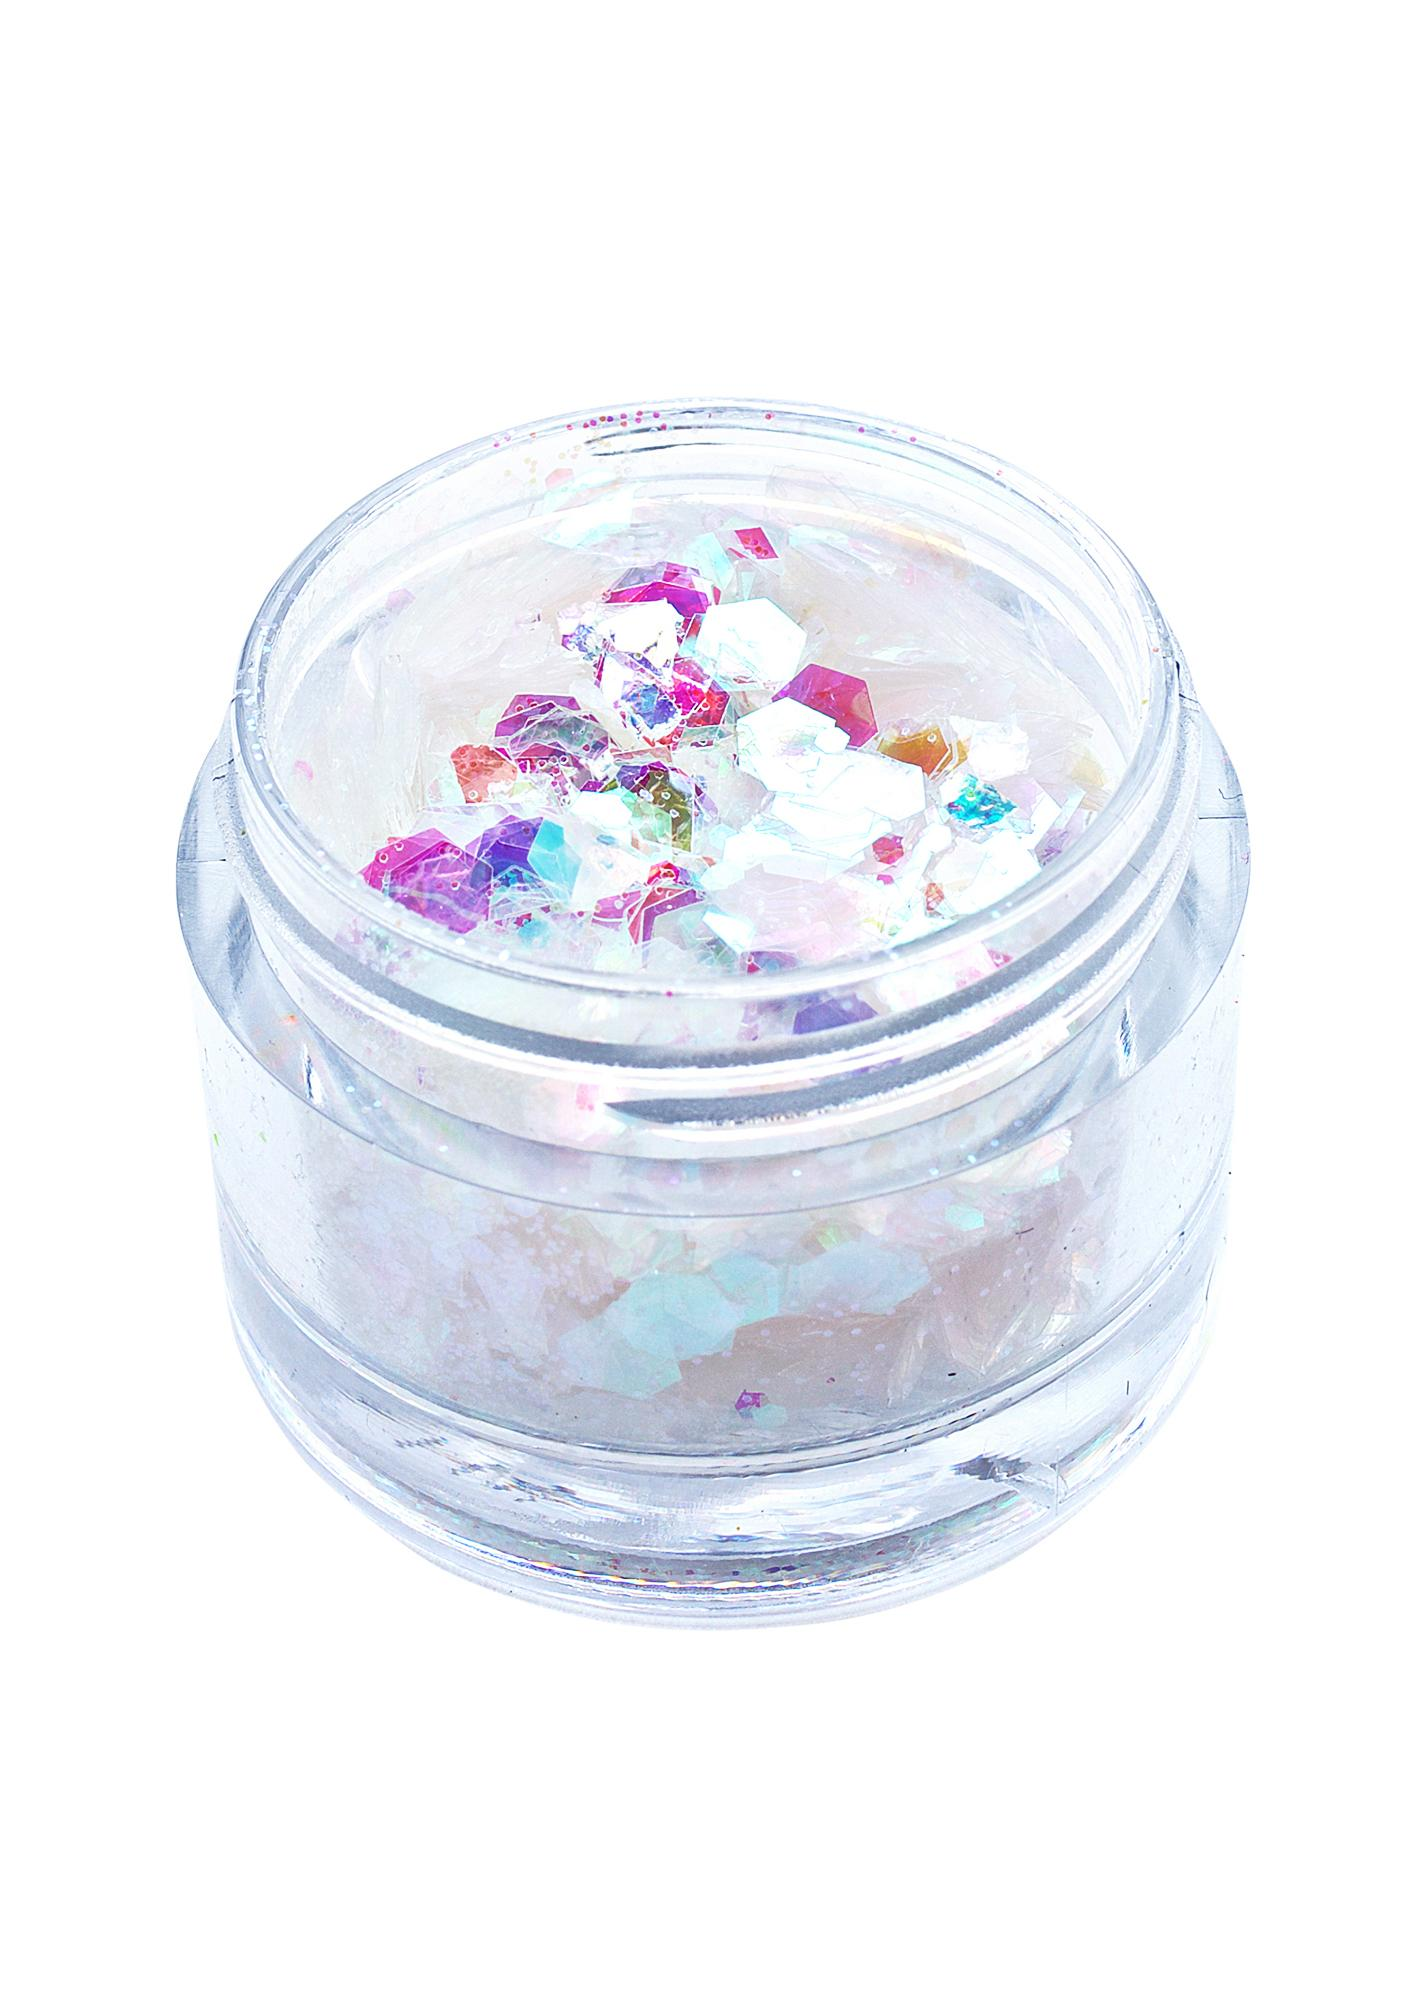 In Your Dreams Iridescent Mermaid Chunky Glitter Gel